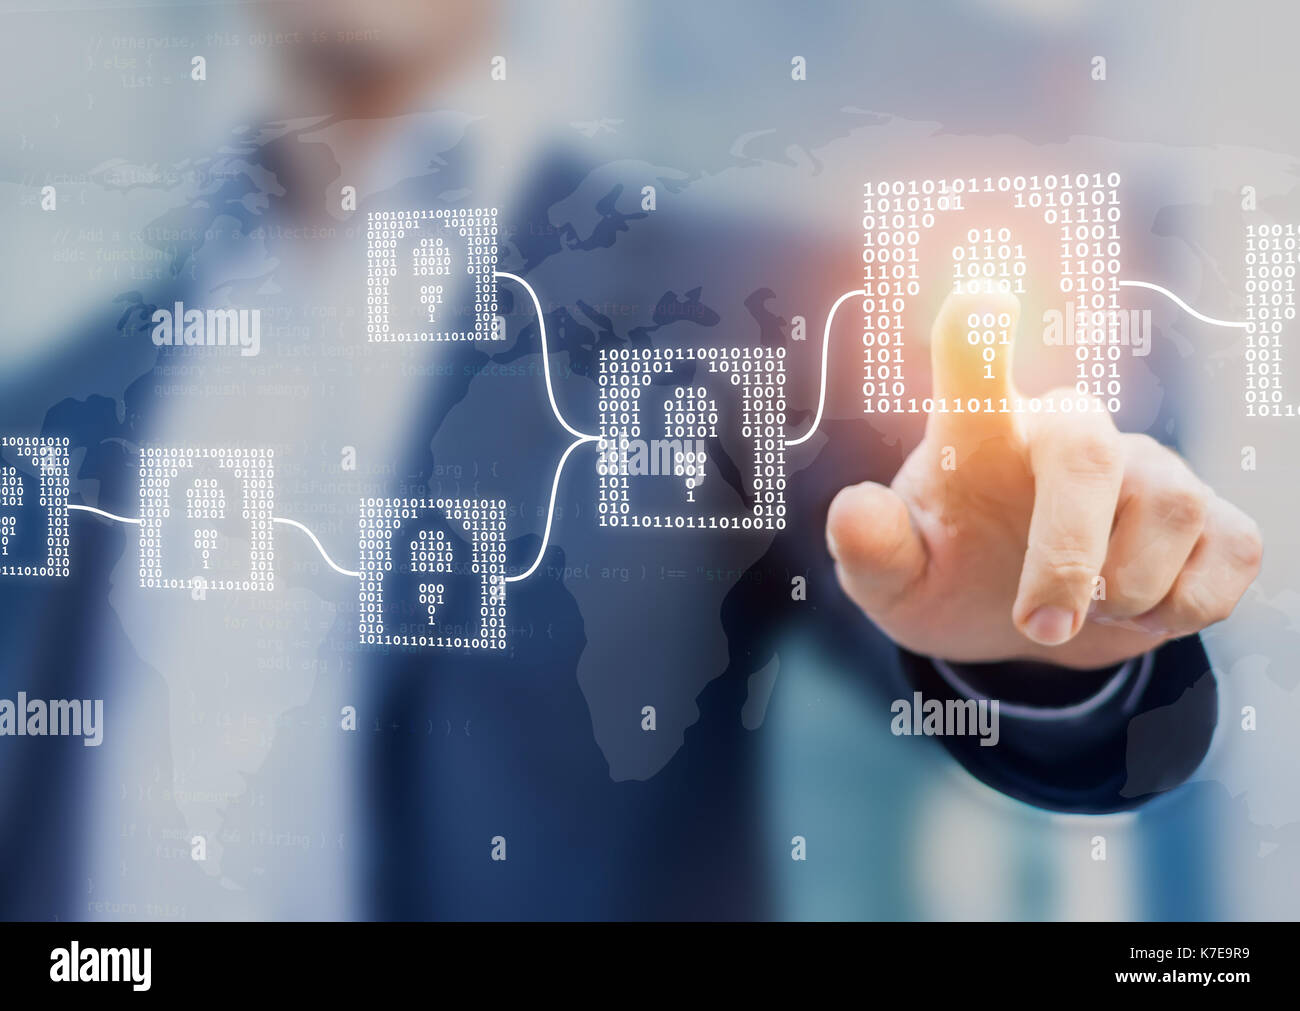 Blockchain cryptocurrency financial technology concept with binary code blocks linked and person touching interface, fintech - Stock Image